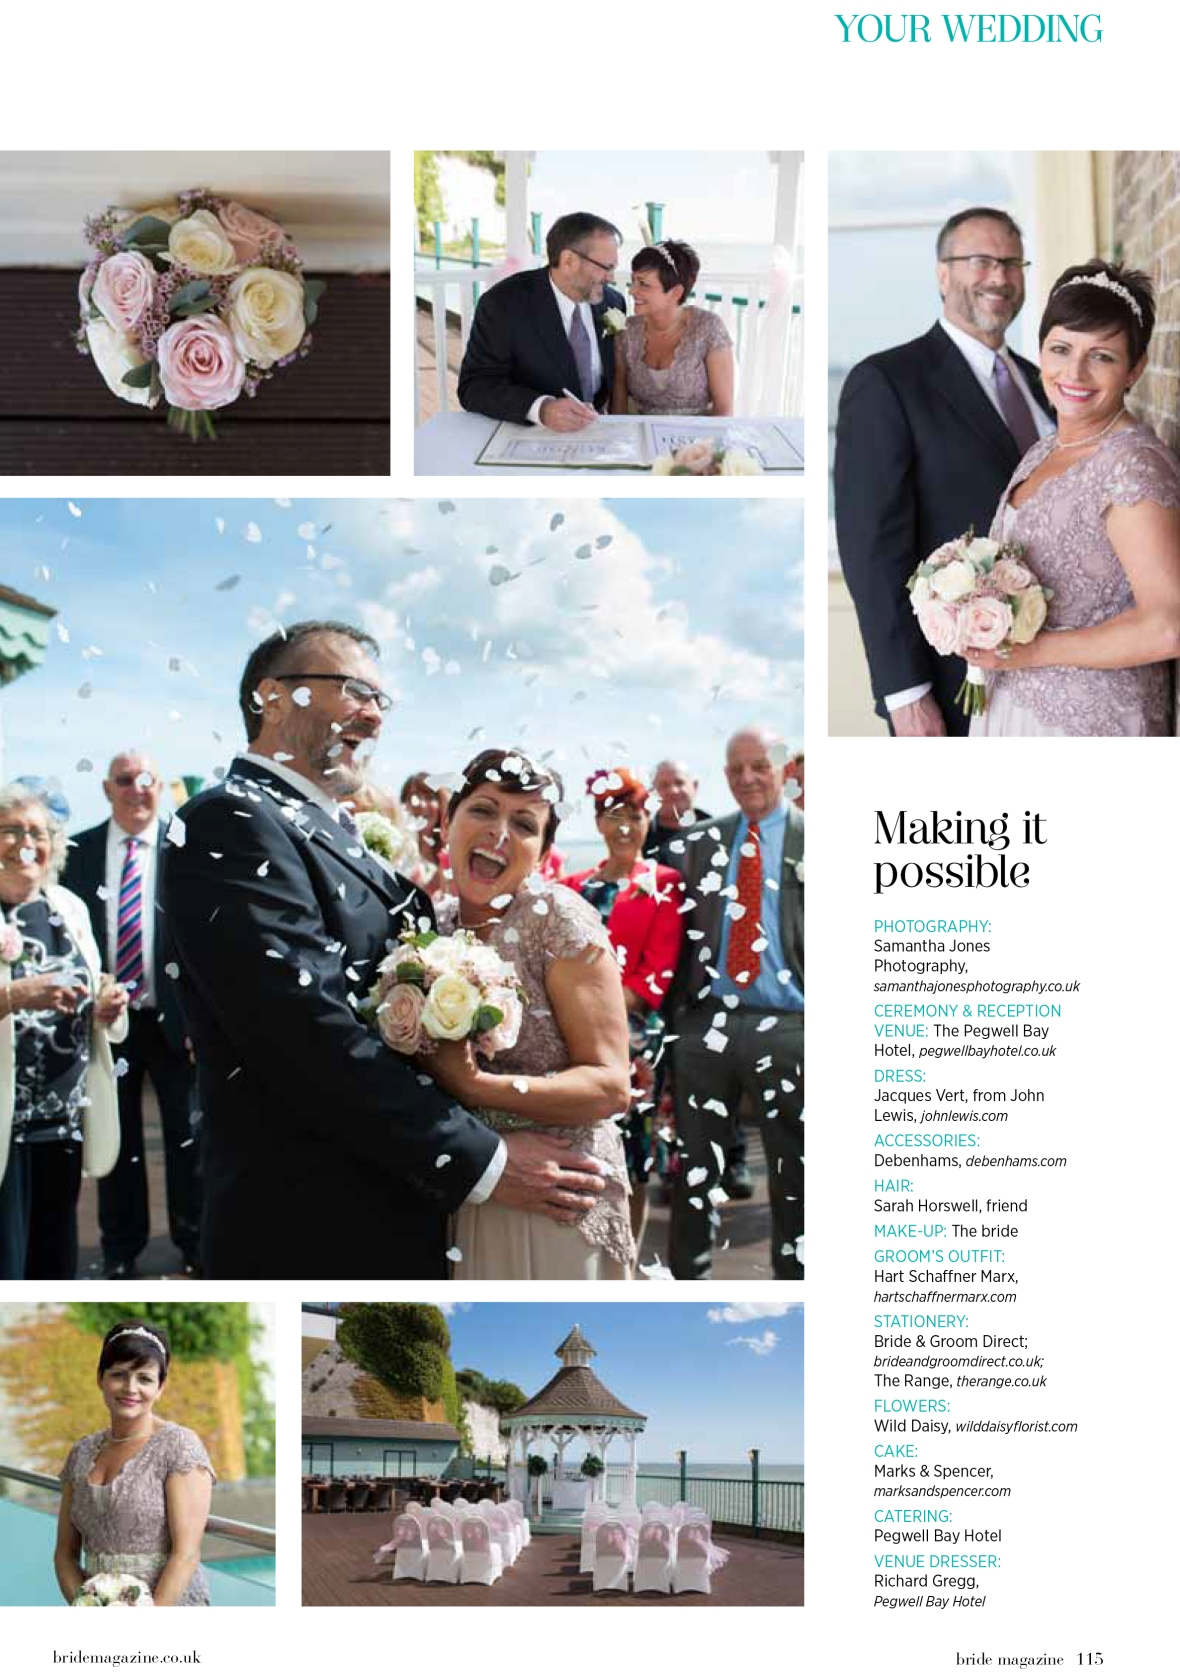 Lisa and Robert wedding at Pegwell Bay in Bride Magazine 2